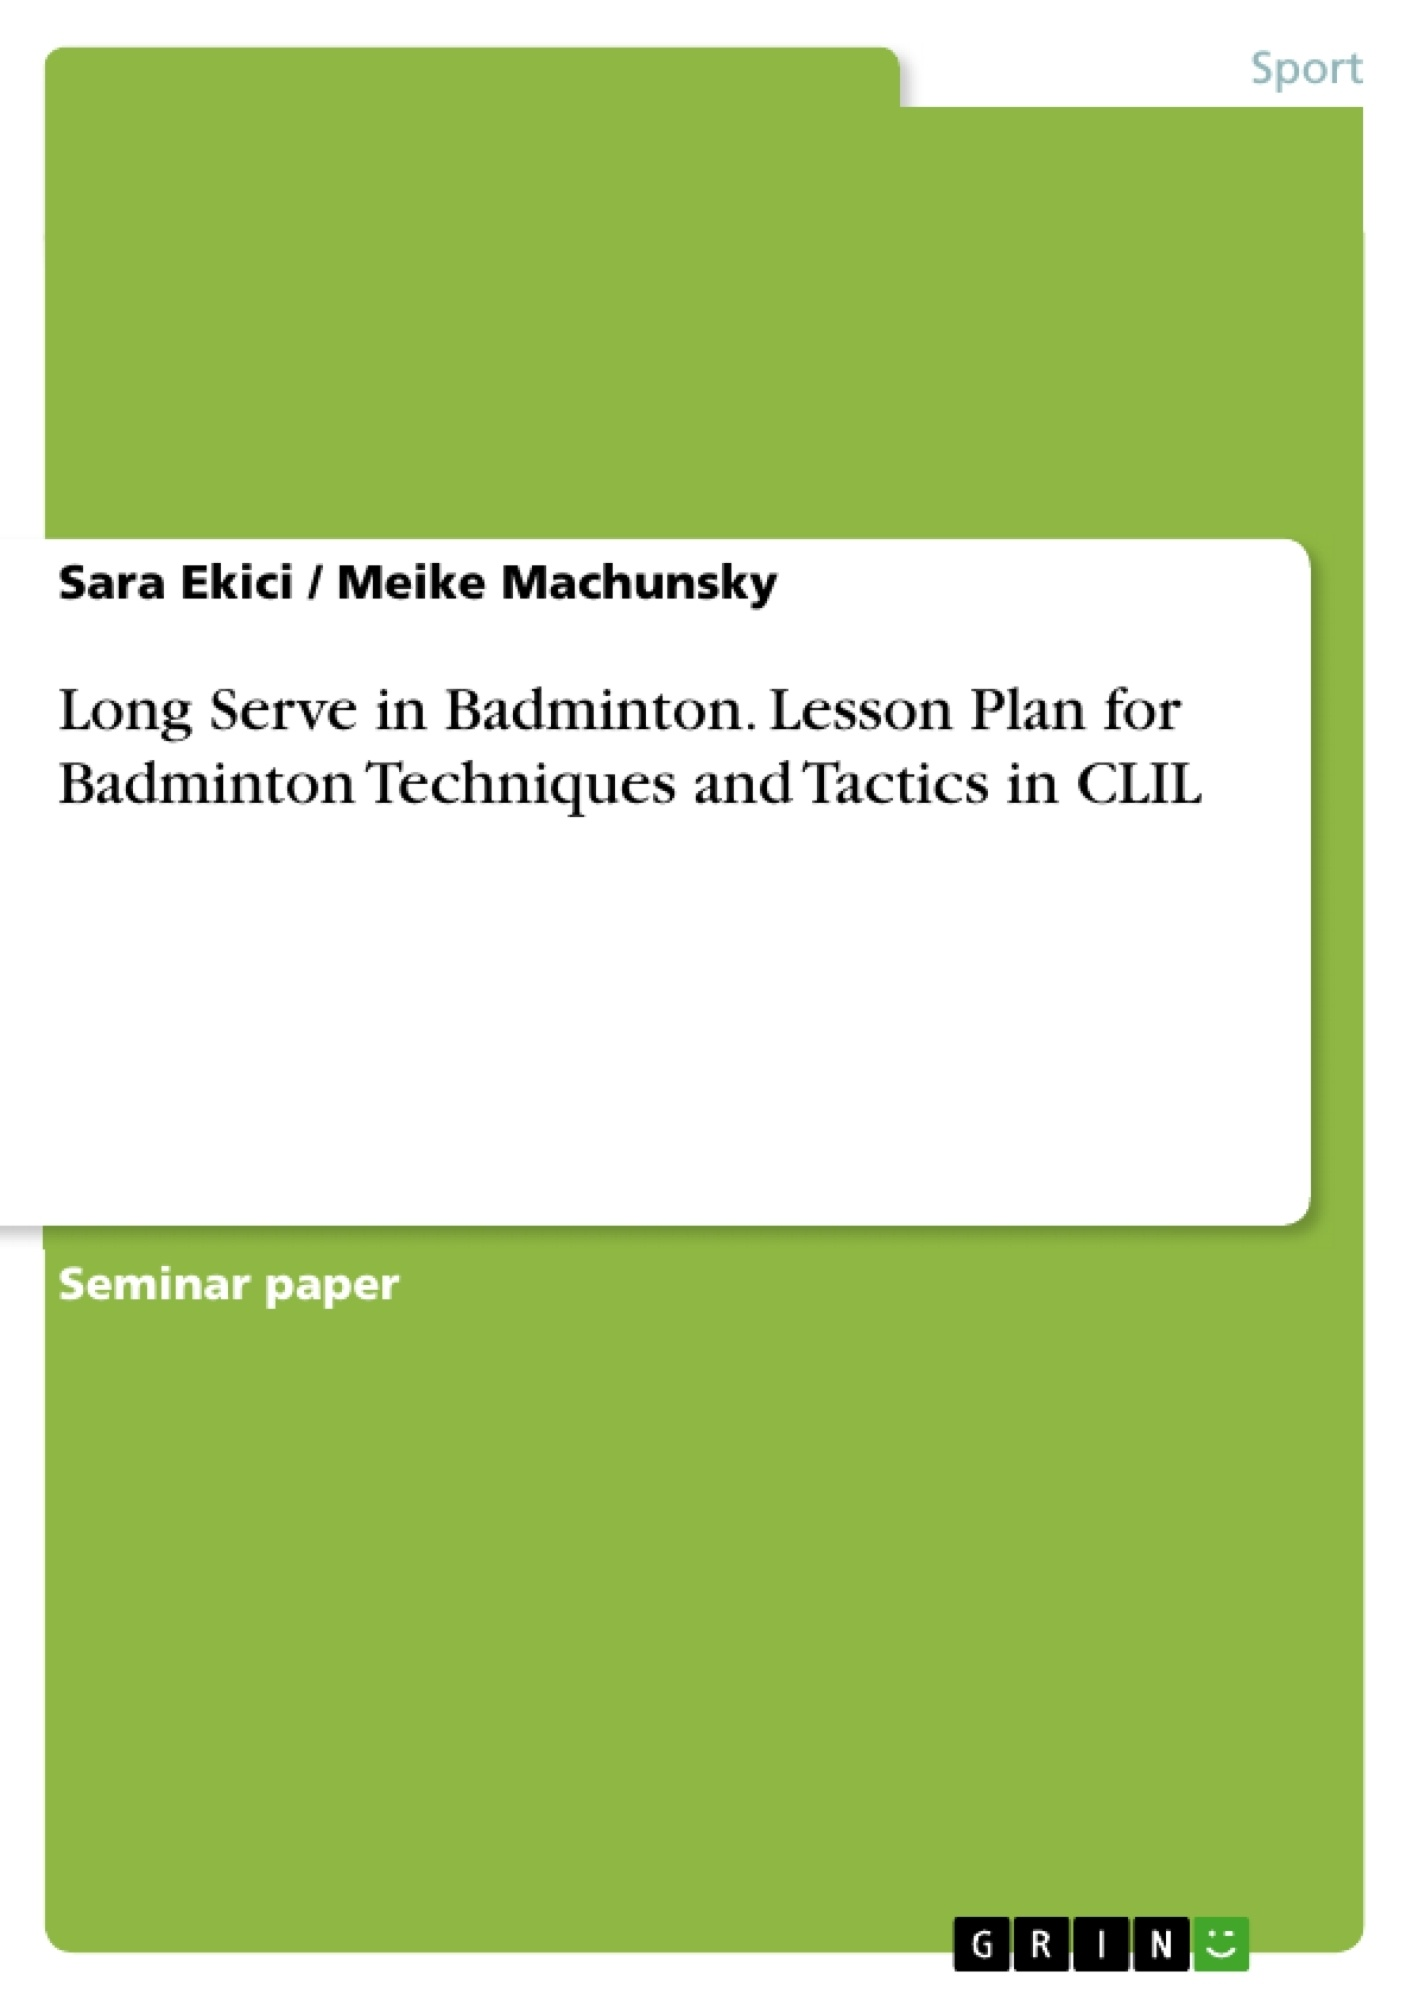 Title: Long Serve in Badminton. Lesson Plan for Badminton Techniques and Tactics in CLIL